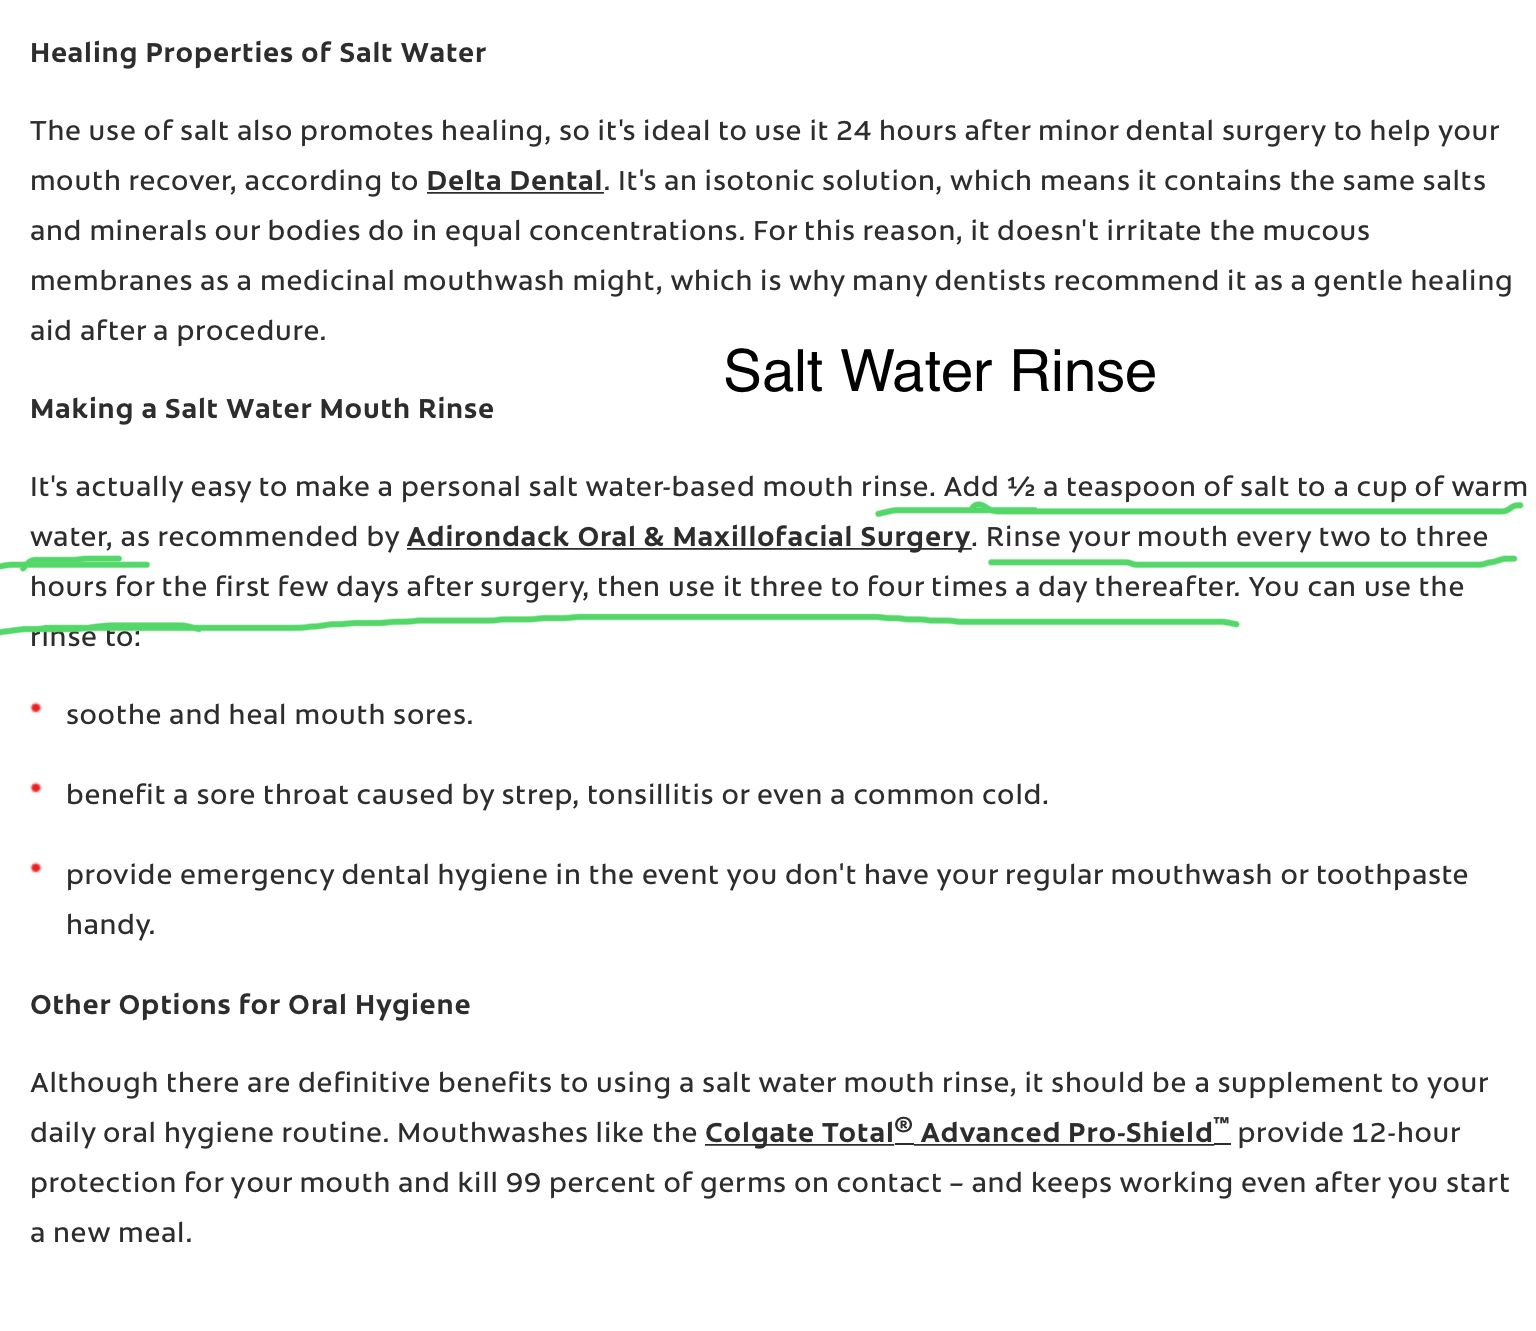 Salt Water Rinse For Mouth Sores Or Post Dental Procedures Salt Water Rinse Mouth Mouth Rinse Dental Procedures